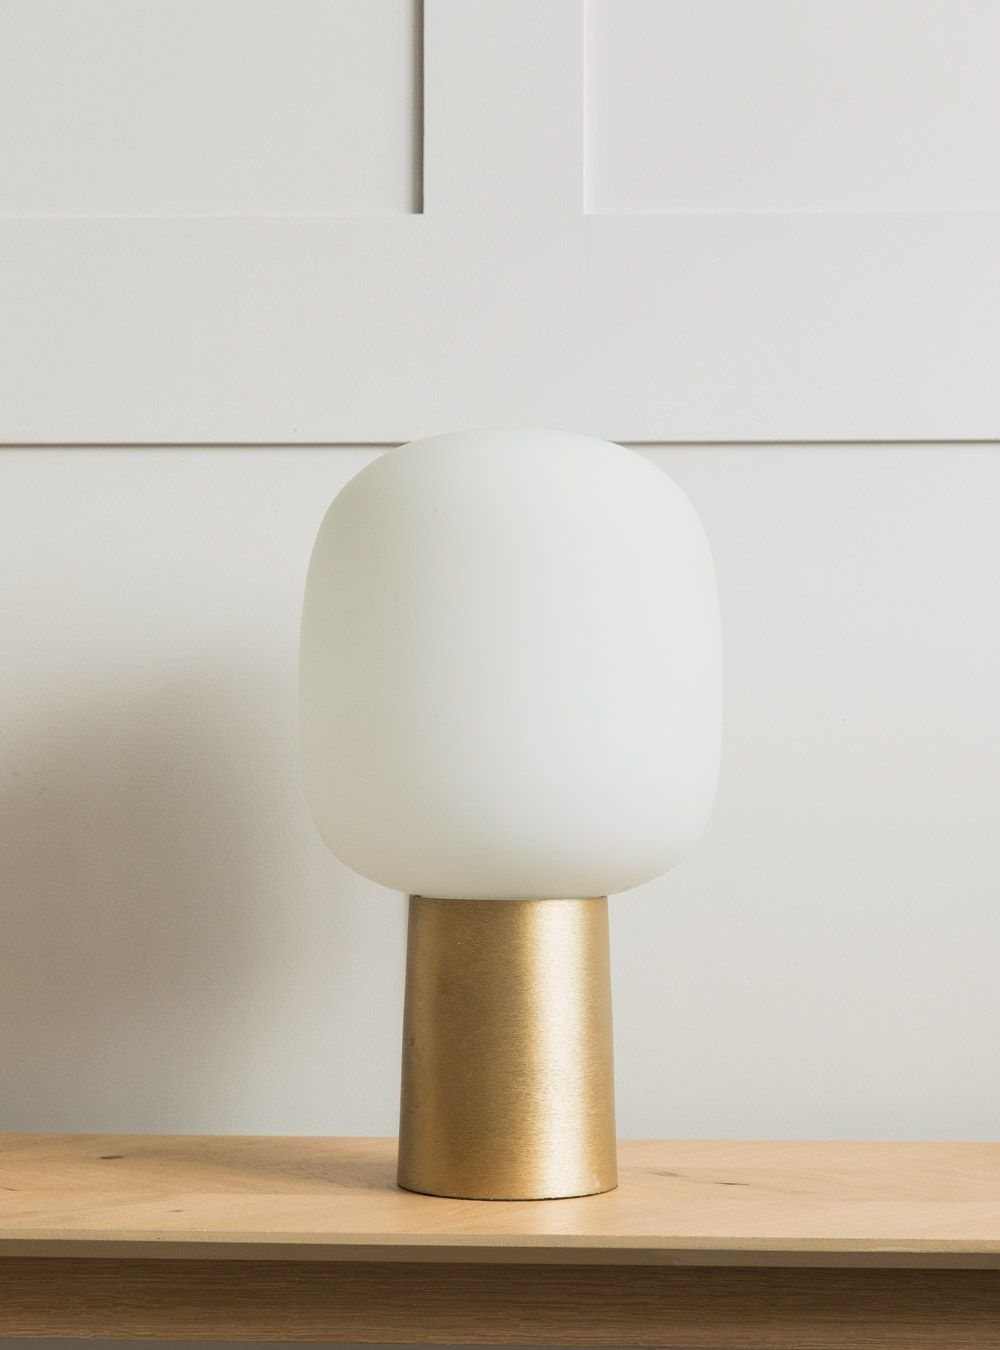 This Sleek Stylish Lamp Is Perfect For A Larger Side Table Lighting Up A Dark Corner Of A Room The Lamp Features A Streamlined Brass Stand And White Shade